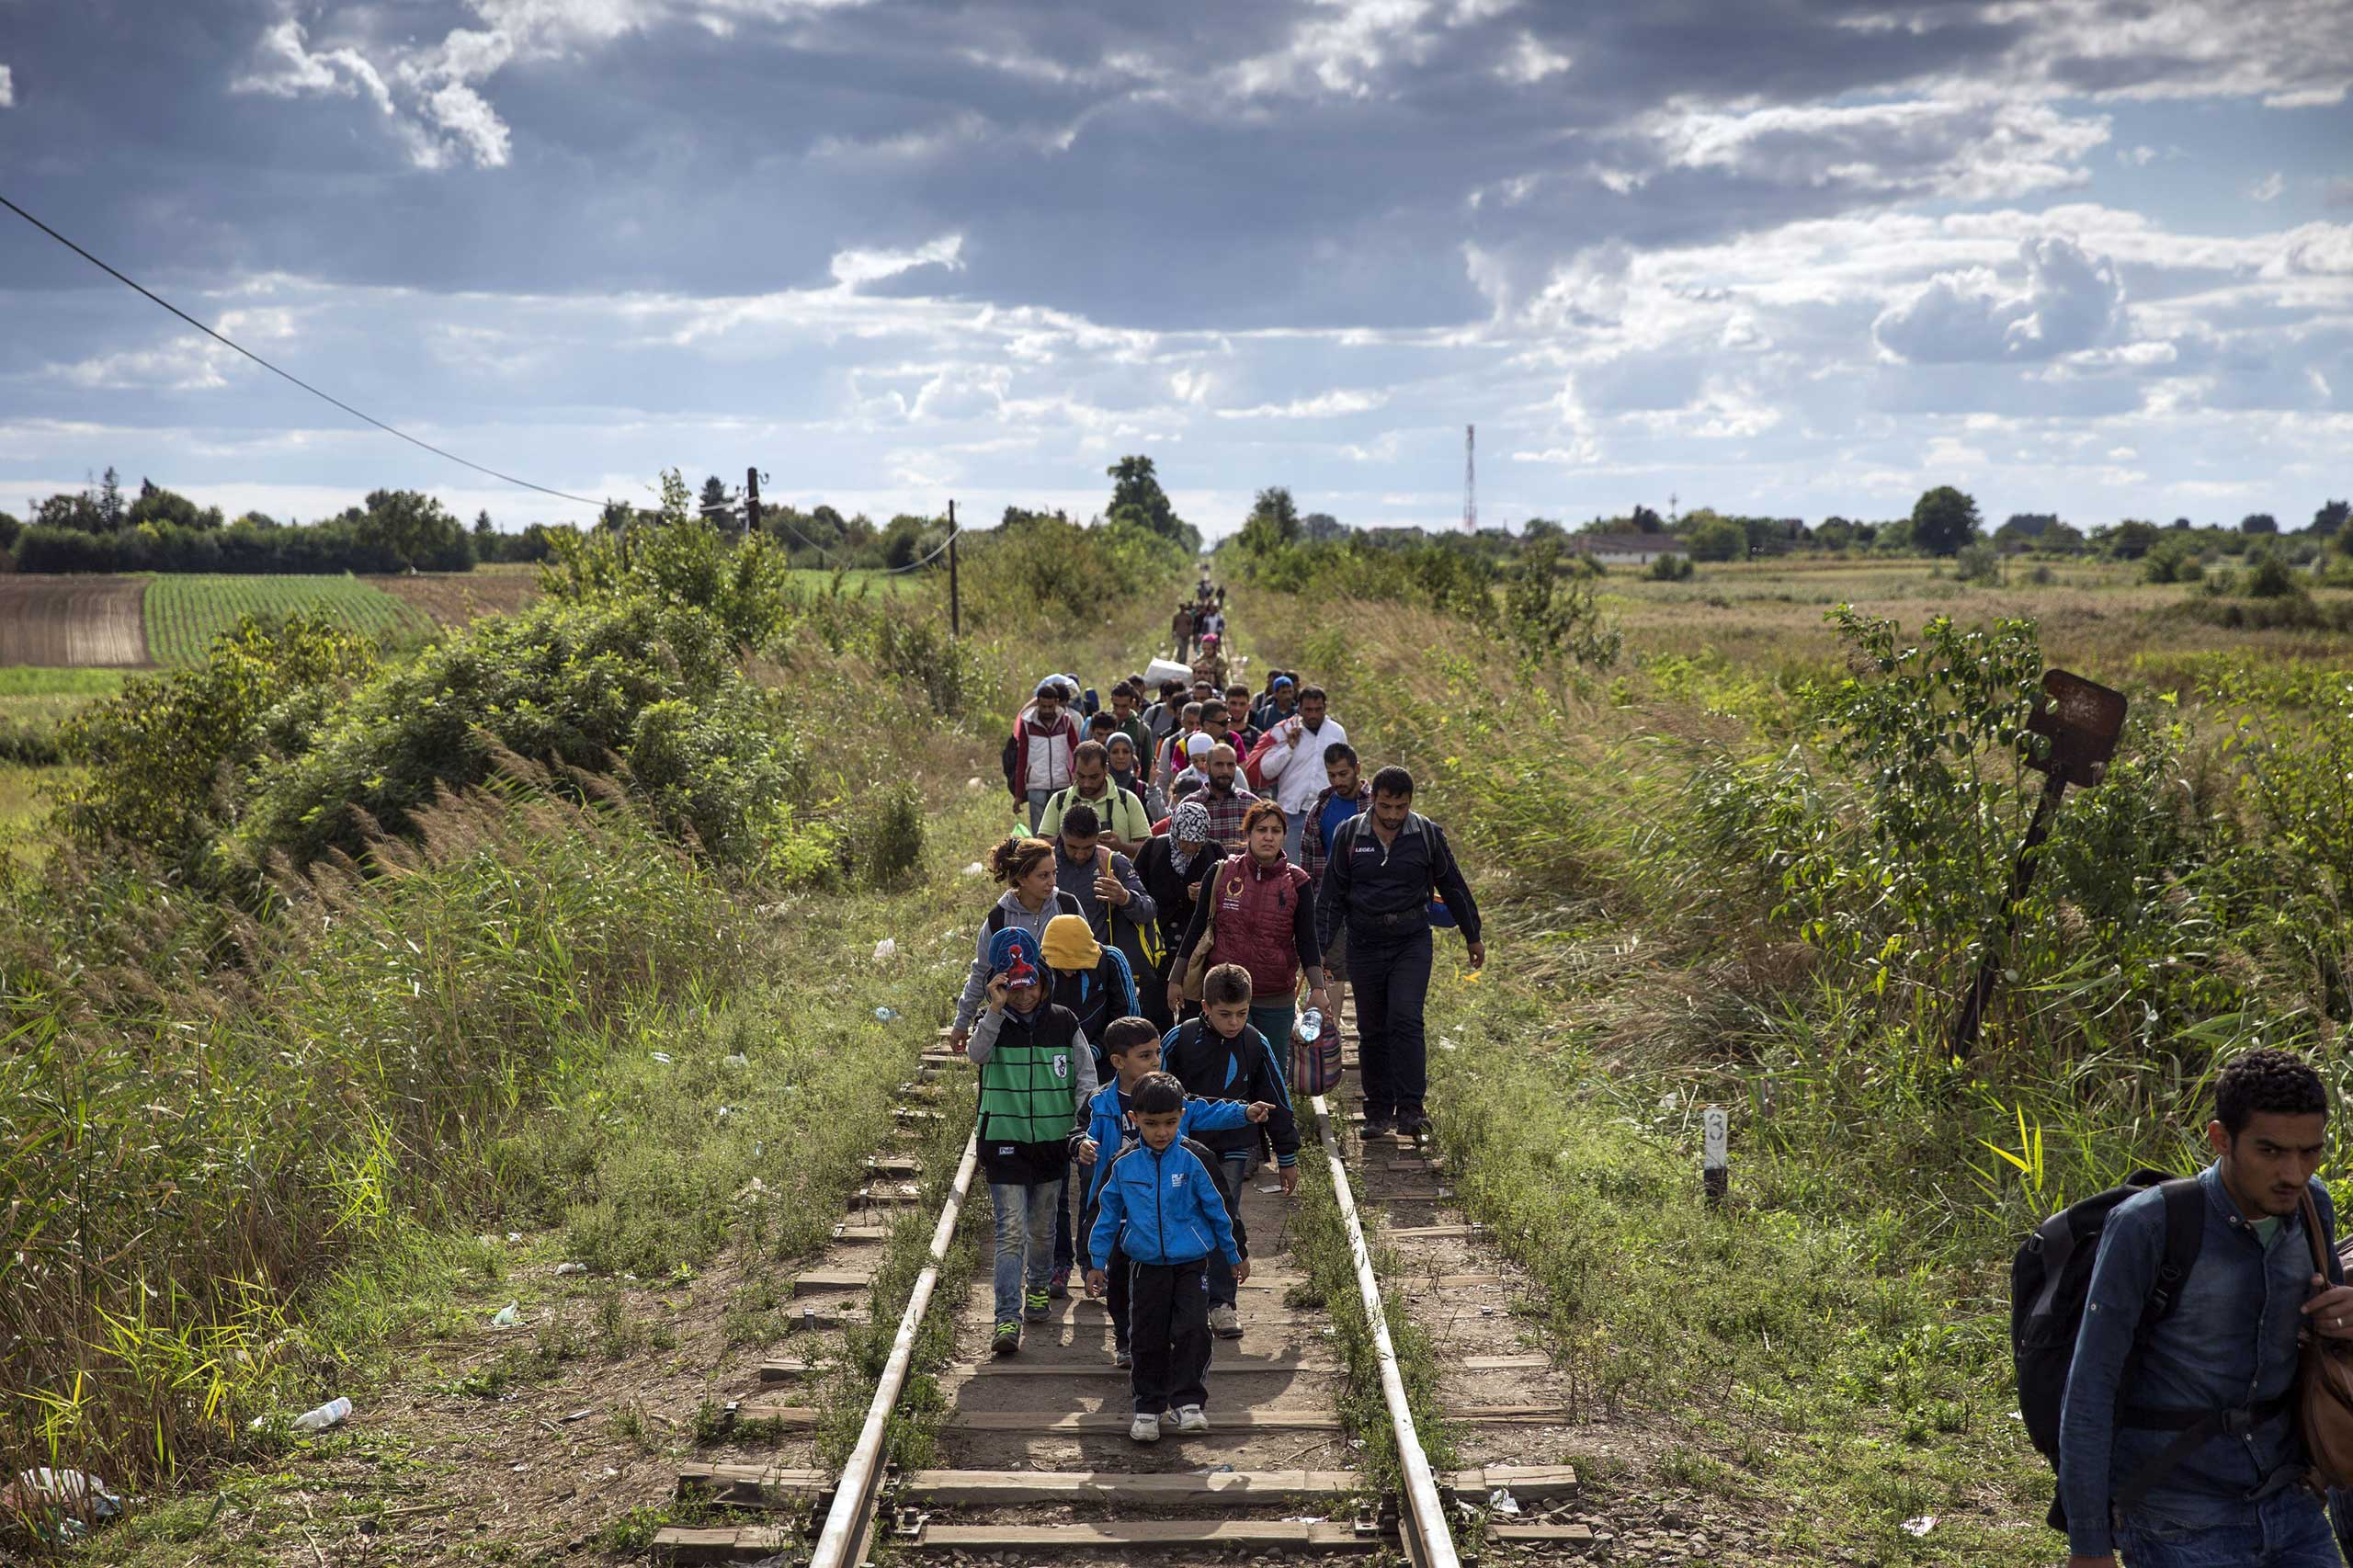 Migrants cross into Hungary as they walk over railroad tracks at the Serbian border with Hungary in Horgas, Serbia, on Sept. 7, 2015.